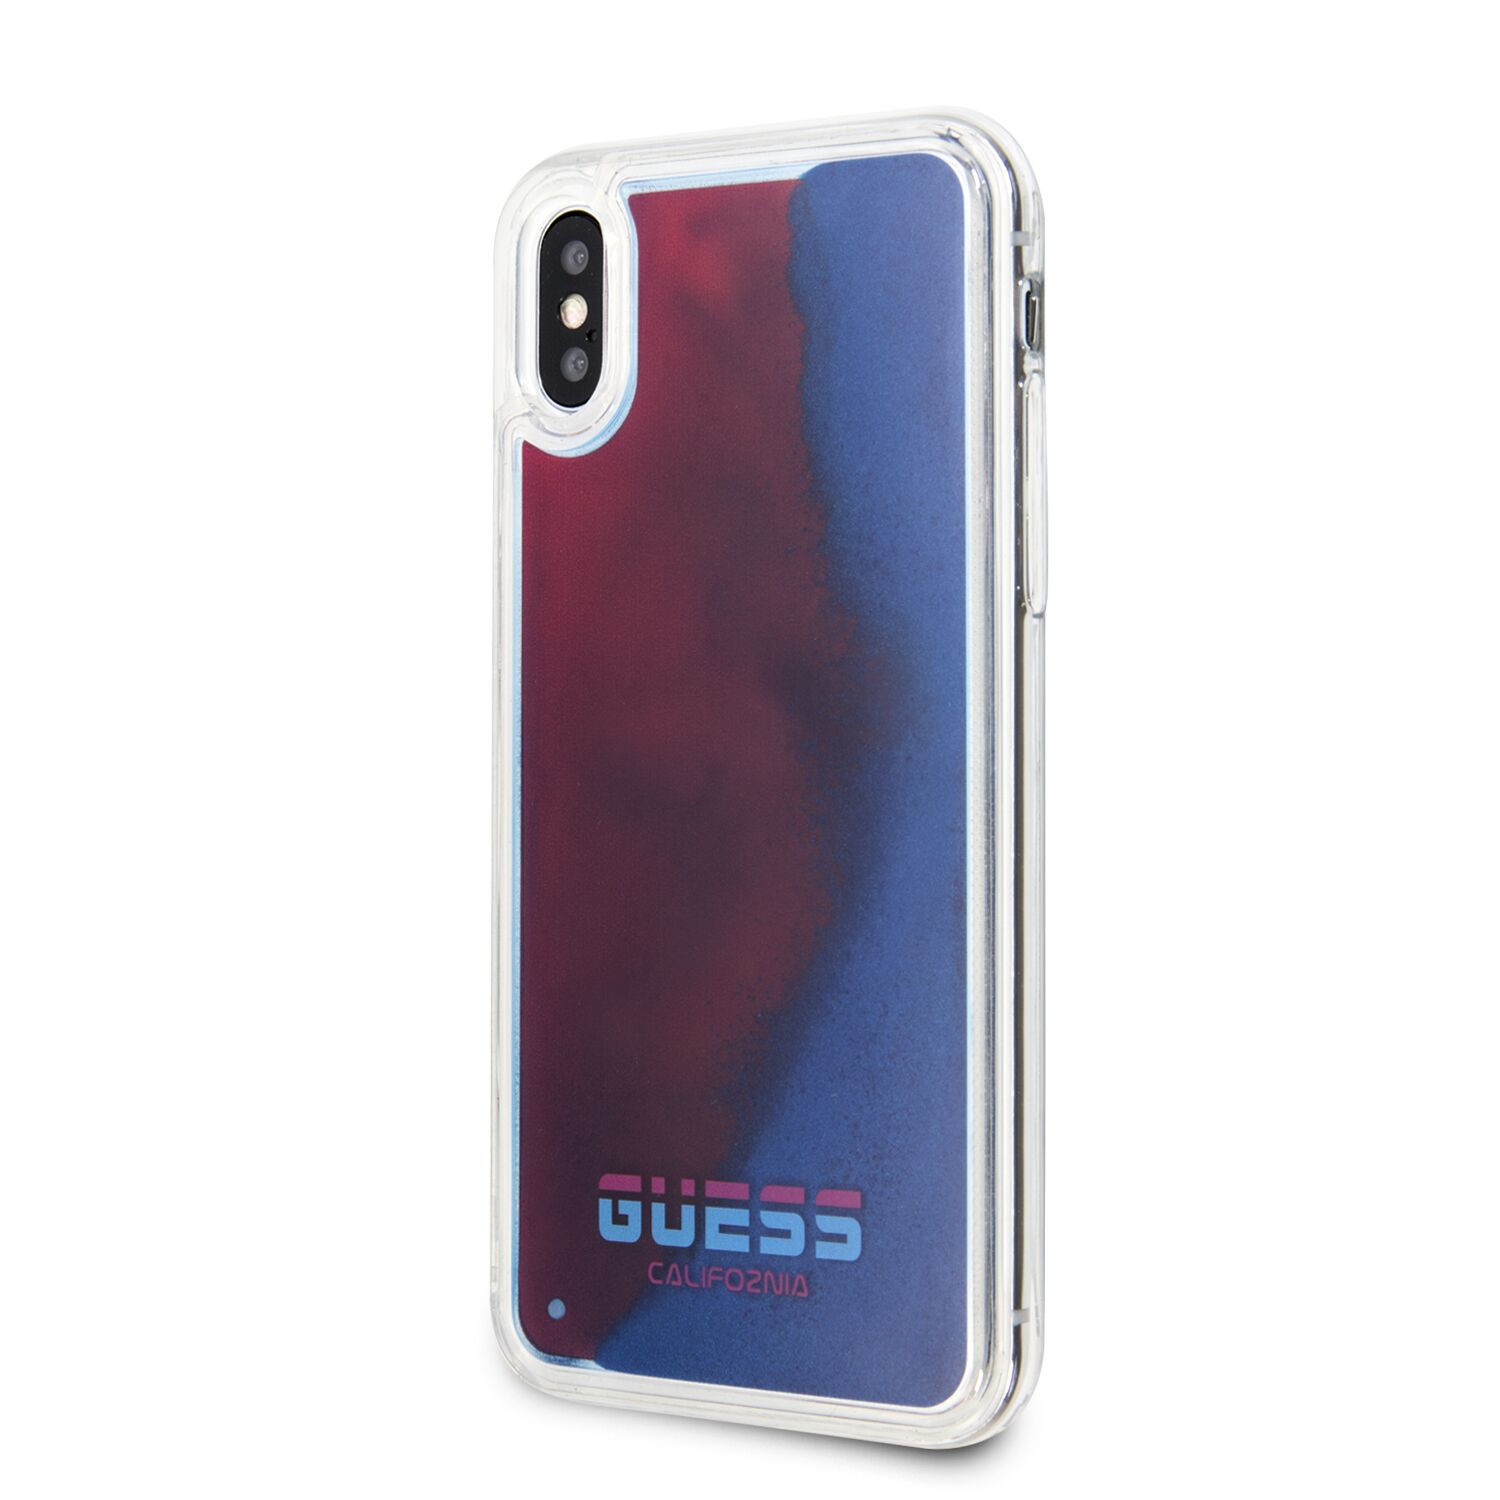 Guess Glow in The Dark GUHCPXGLCRE Zadní kryt pro Apple iPhone X/XS sand/red C/TPU Kryt pro iPhone X/XS Sand/Red (EU Blister)